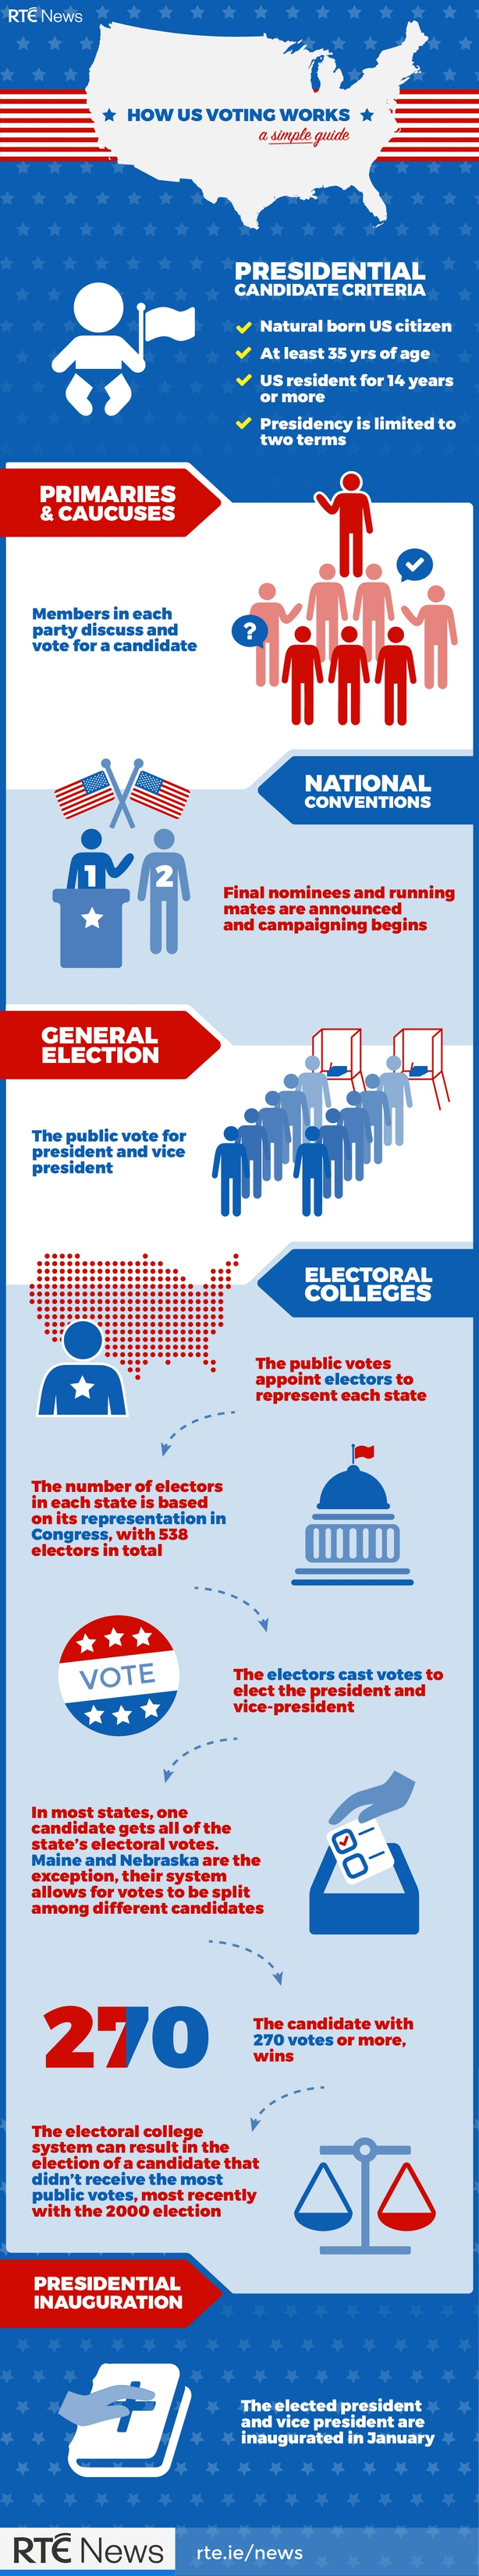 the us electoral college explained the president elect takes the oath of office and becomes the 45th president of the united states at noon on 20 2017